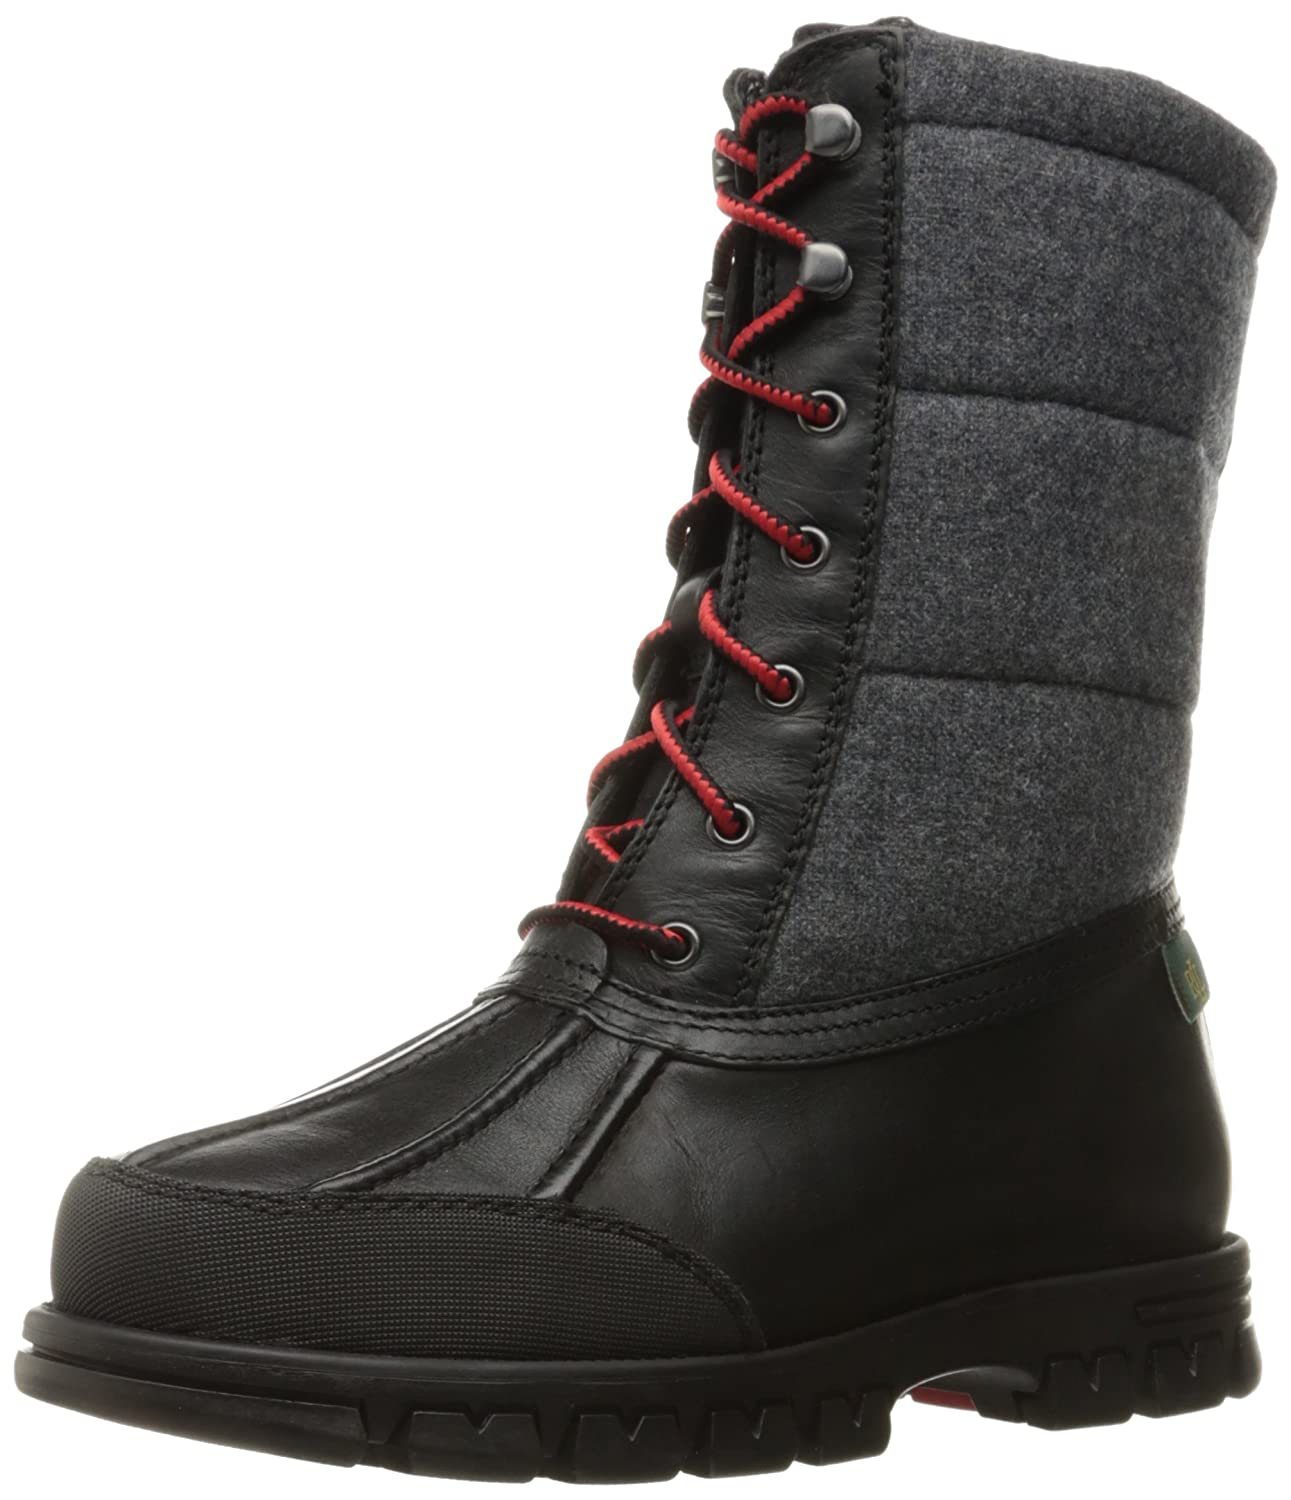 Lauren by Ralph Lauren Women's Quinlyn Snow Boot B01GFJMLP6 9.5 B(M) US|Black/Grey Leather/Flannel